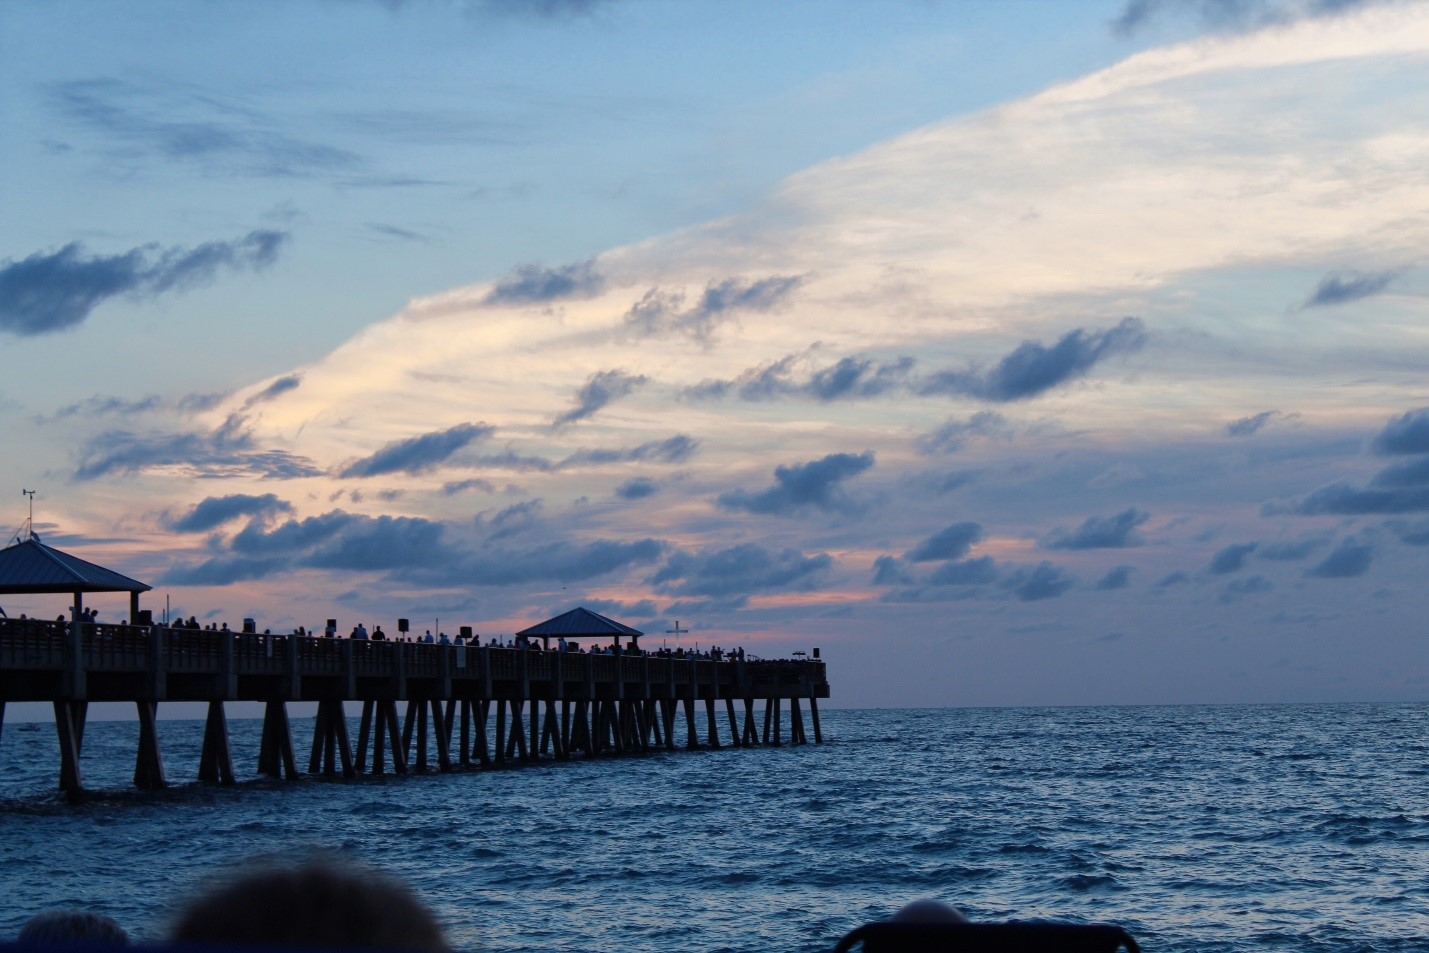 The sun rises as the pastor delivers his message at the end of the pier on Easter Sunday. March 31